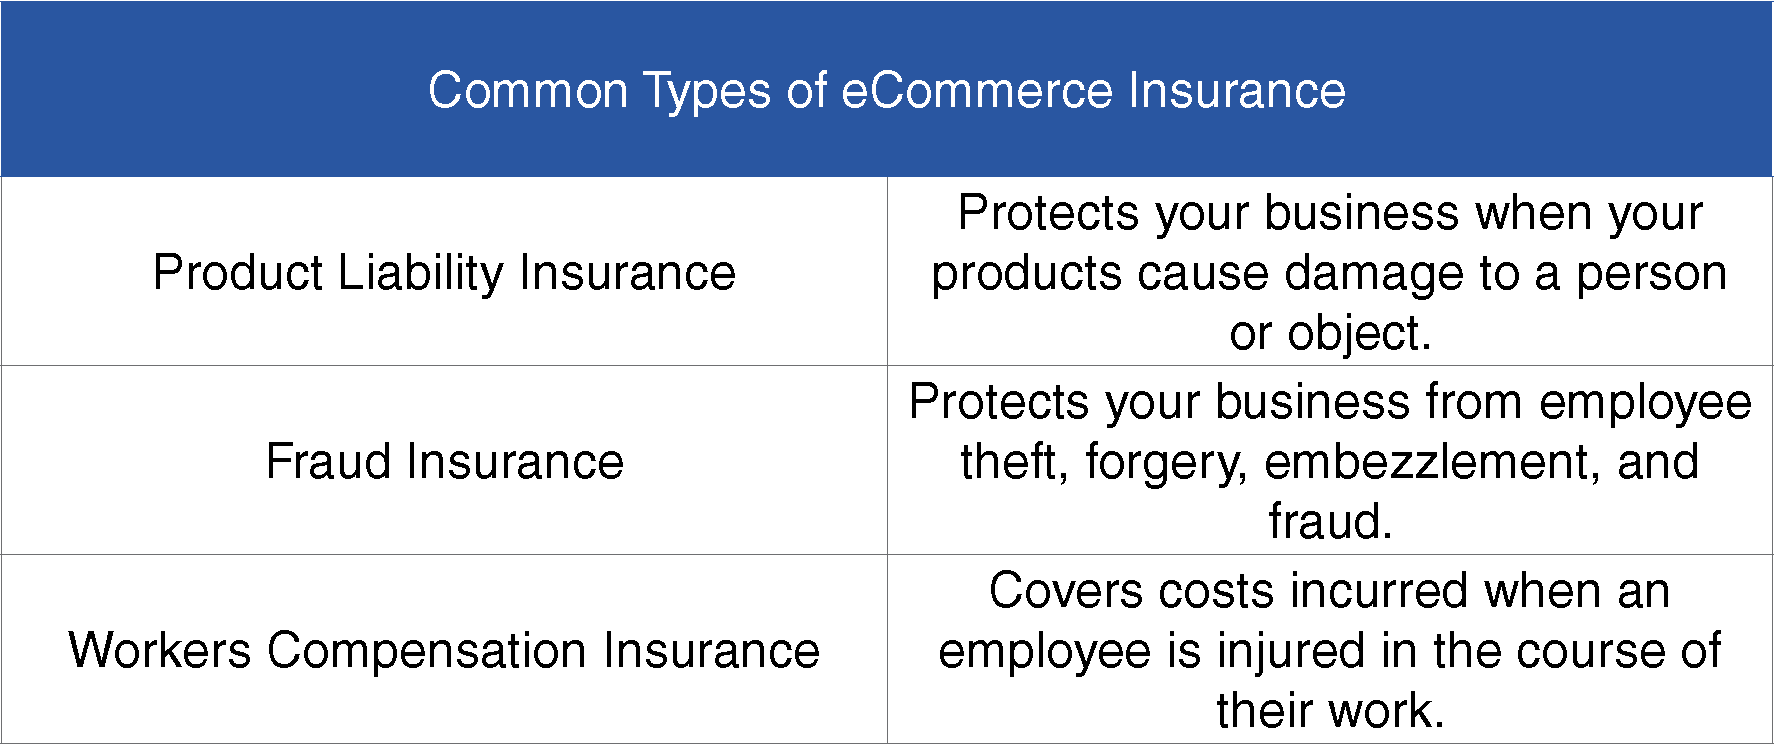 Common Types of eCommerce Insurance